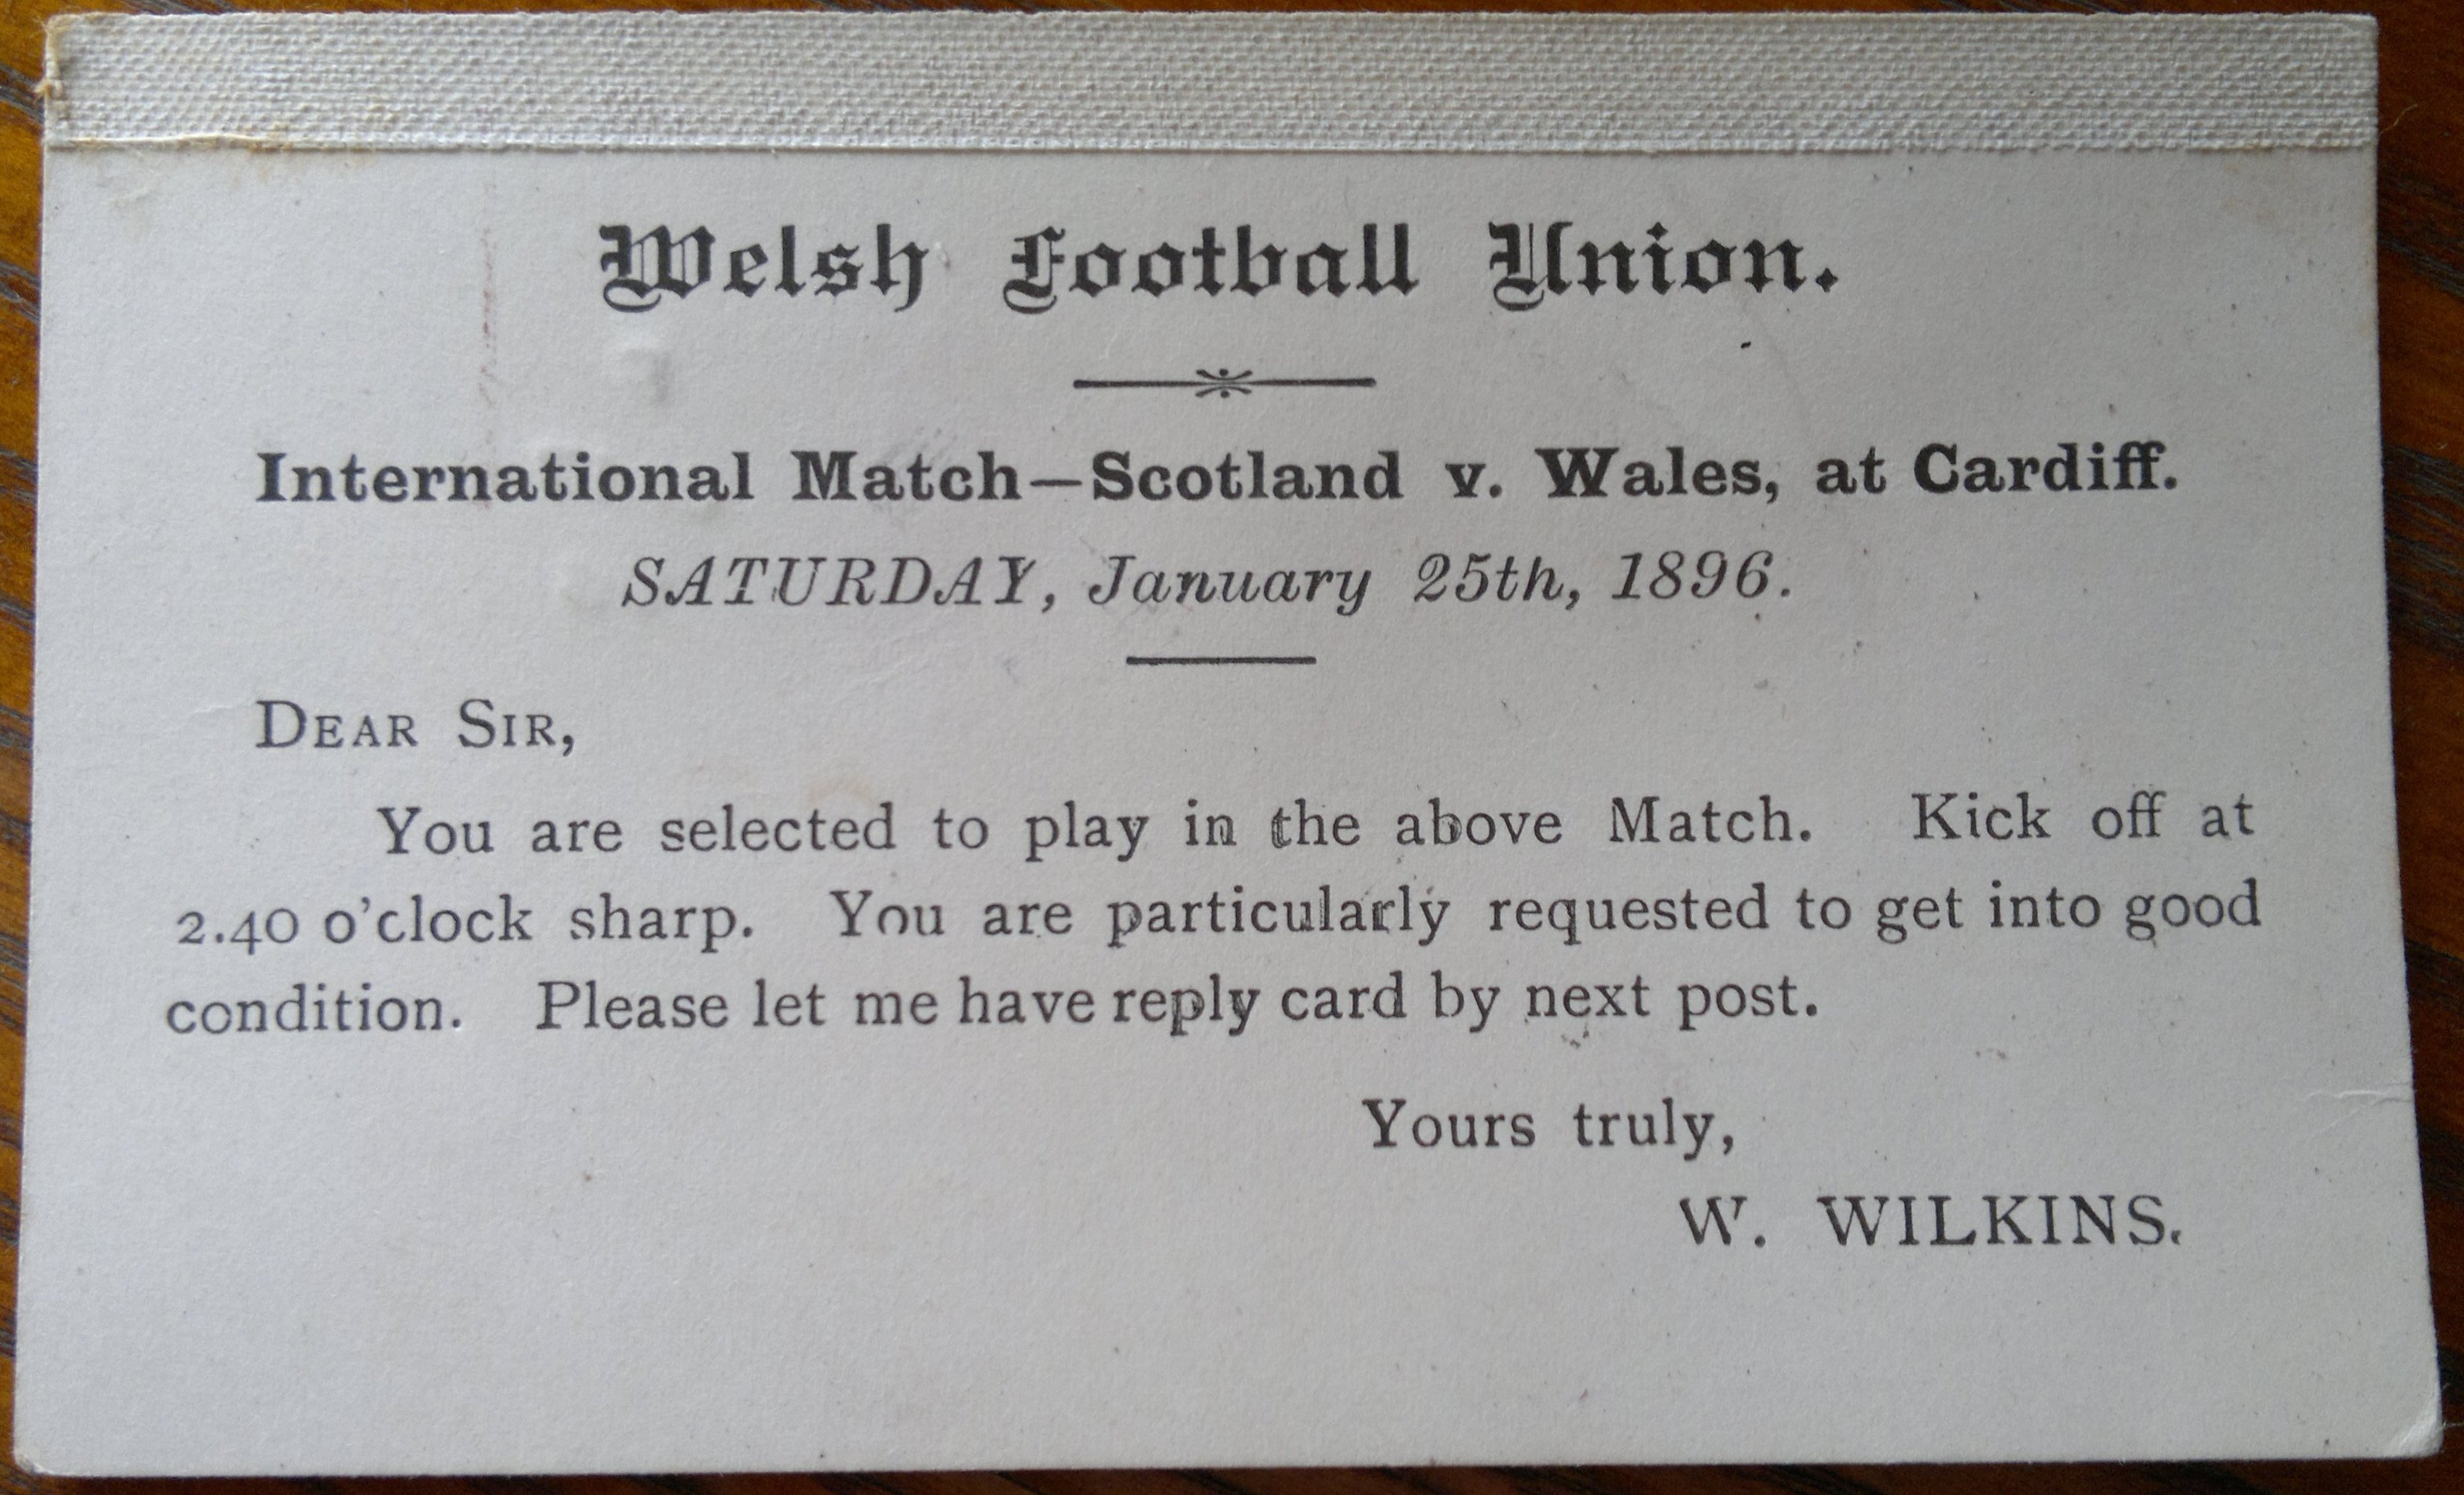 1896 Wales v Scotland (2) Rugby Memorabilia Society - Letter